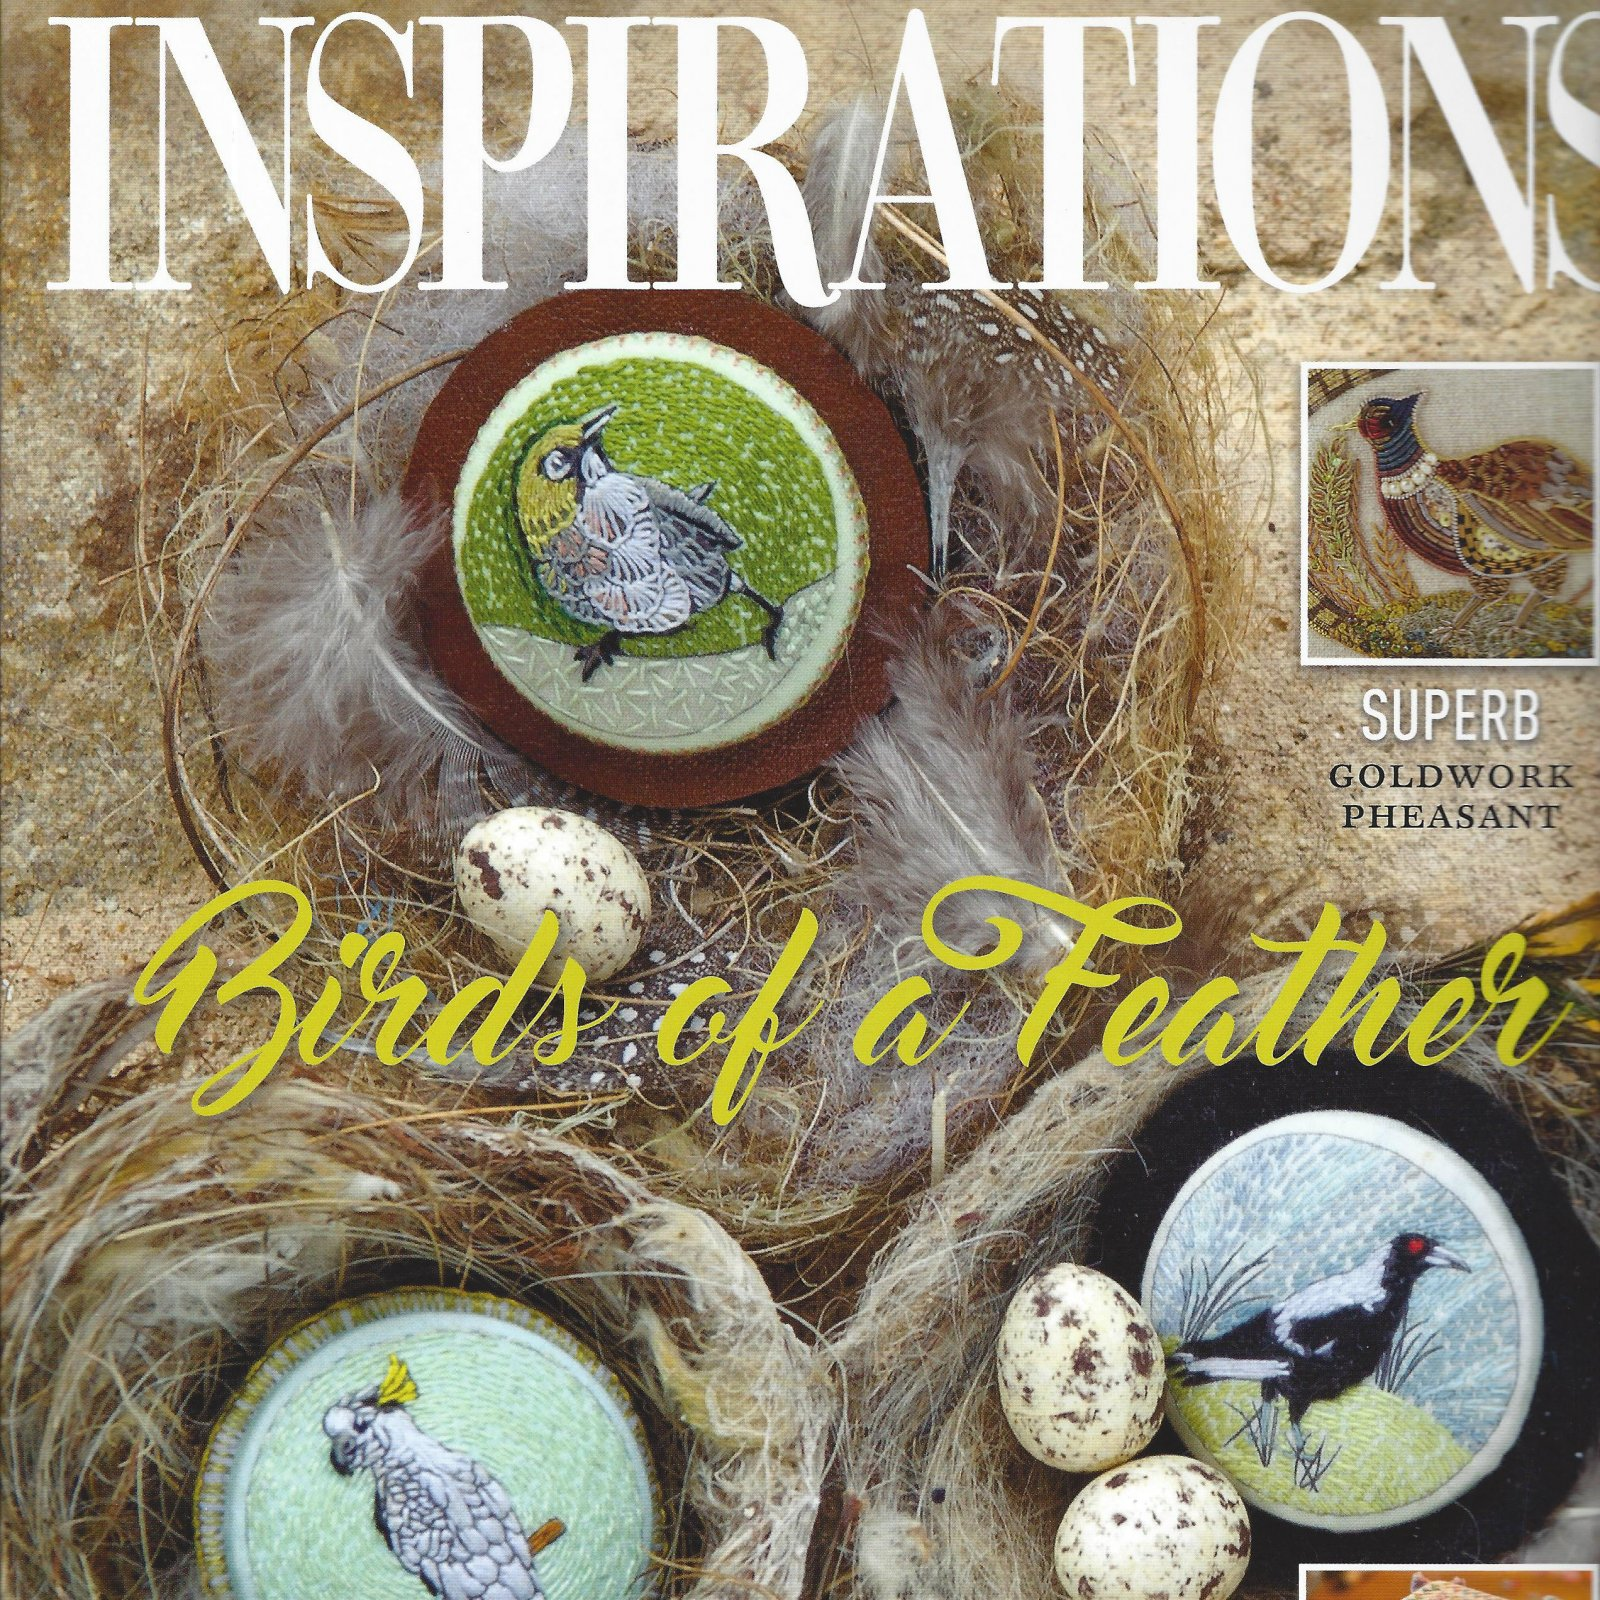 INSPIRATIONS, Issue 93 2017